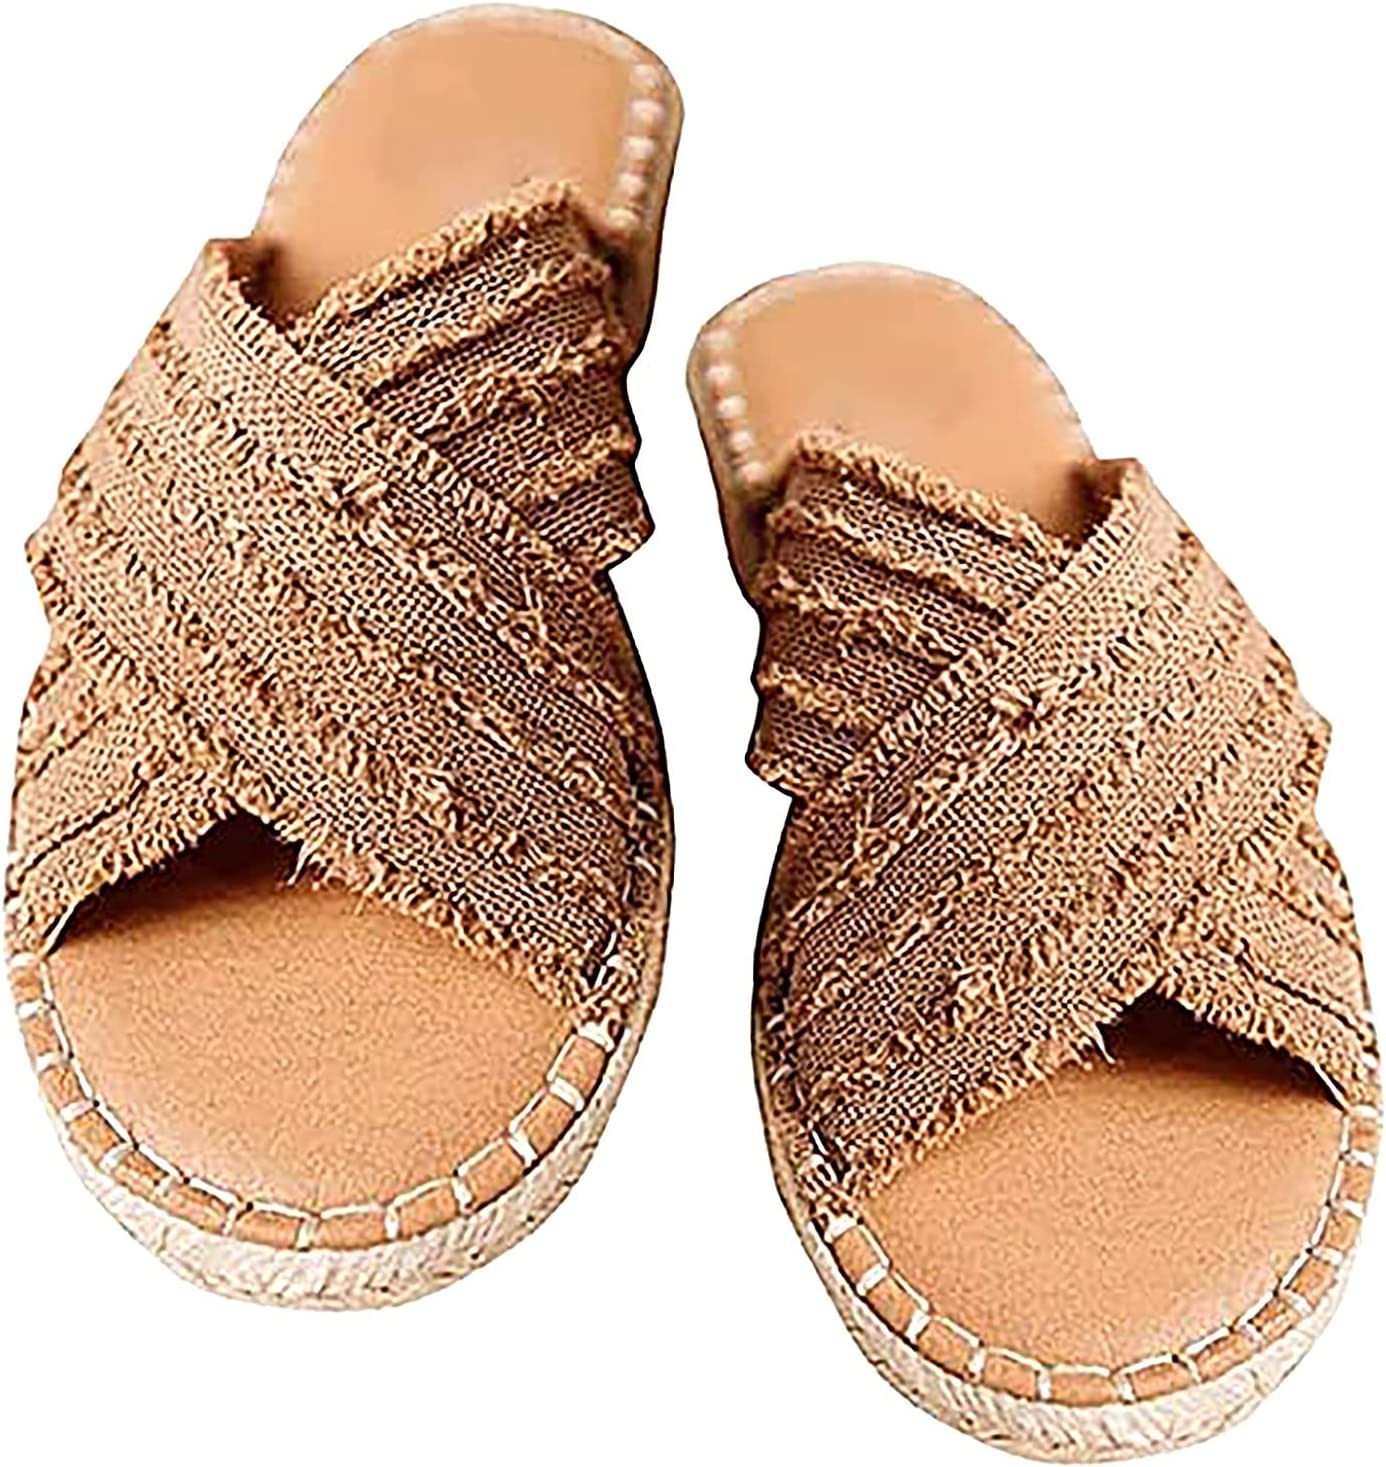 Cleo Espadrille Slides, 2021 Flat-Bottomed Straw Cross Fisherman Shoes Bohemian Outer Wear Sandals and Slippers, Womens Flat Slide Sandals Open Toe Espadrille Non-Slip Espadrille Beach Sandals